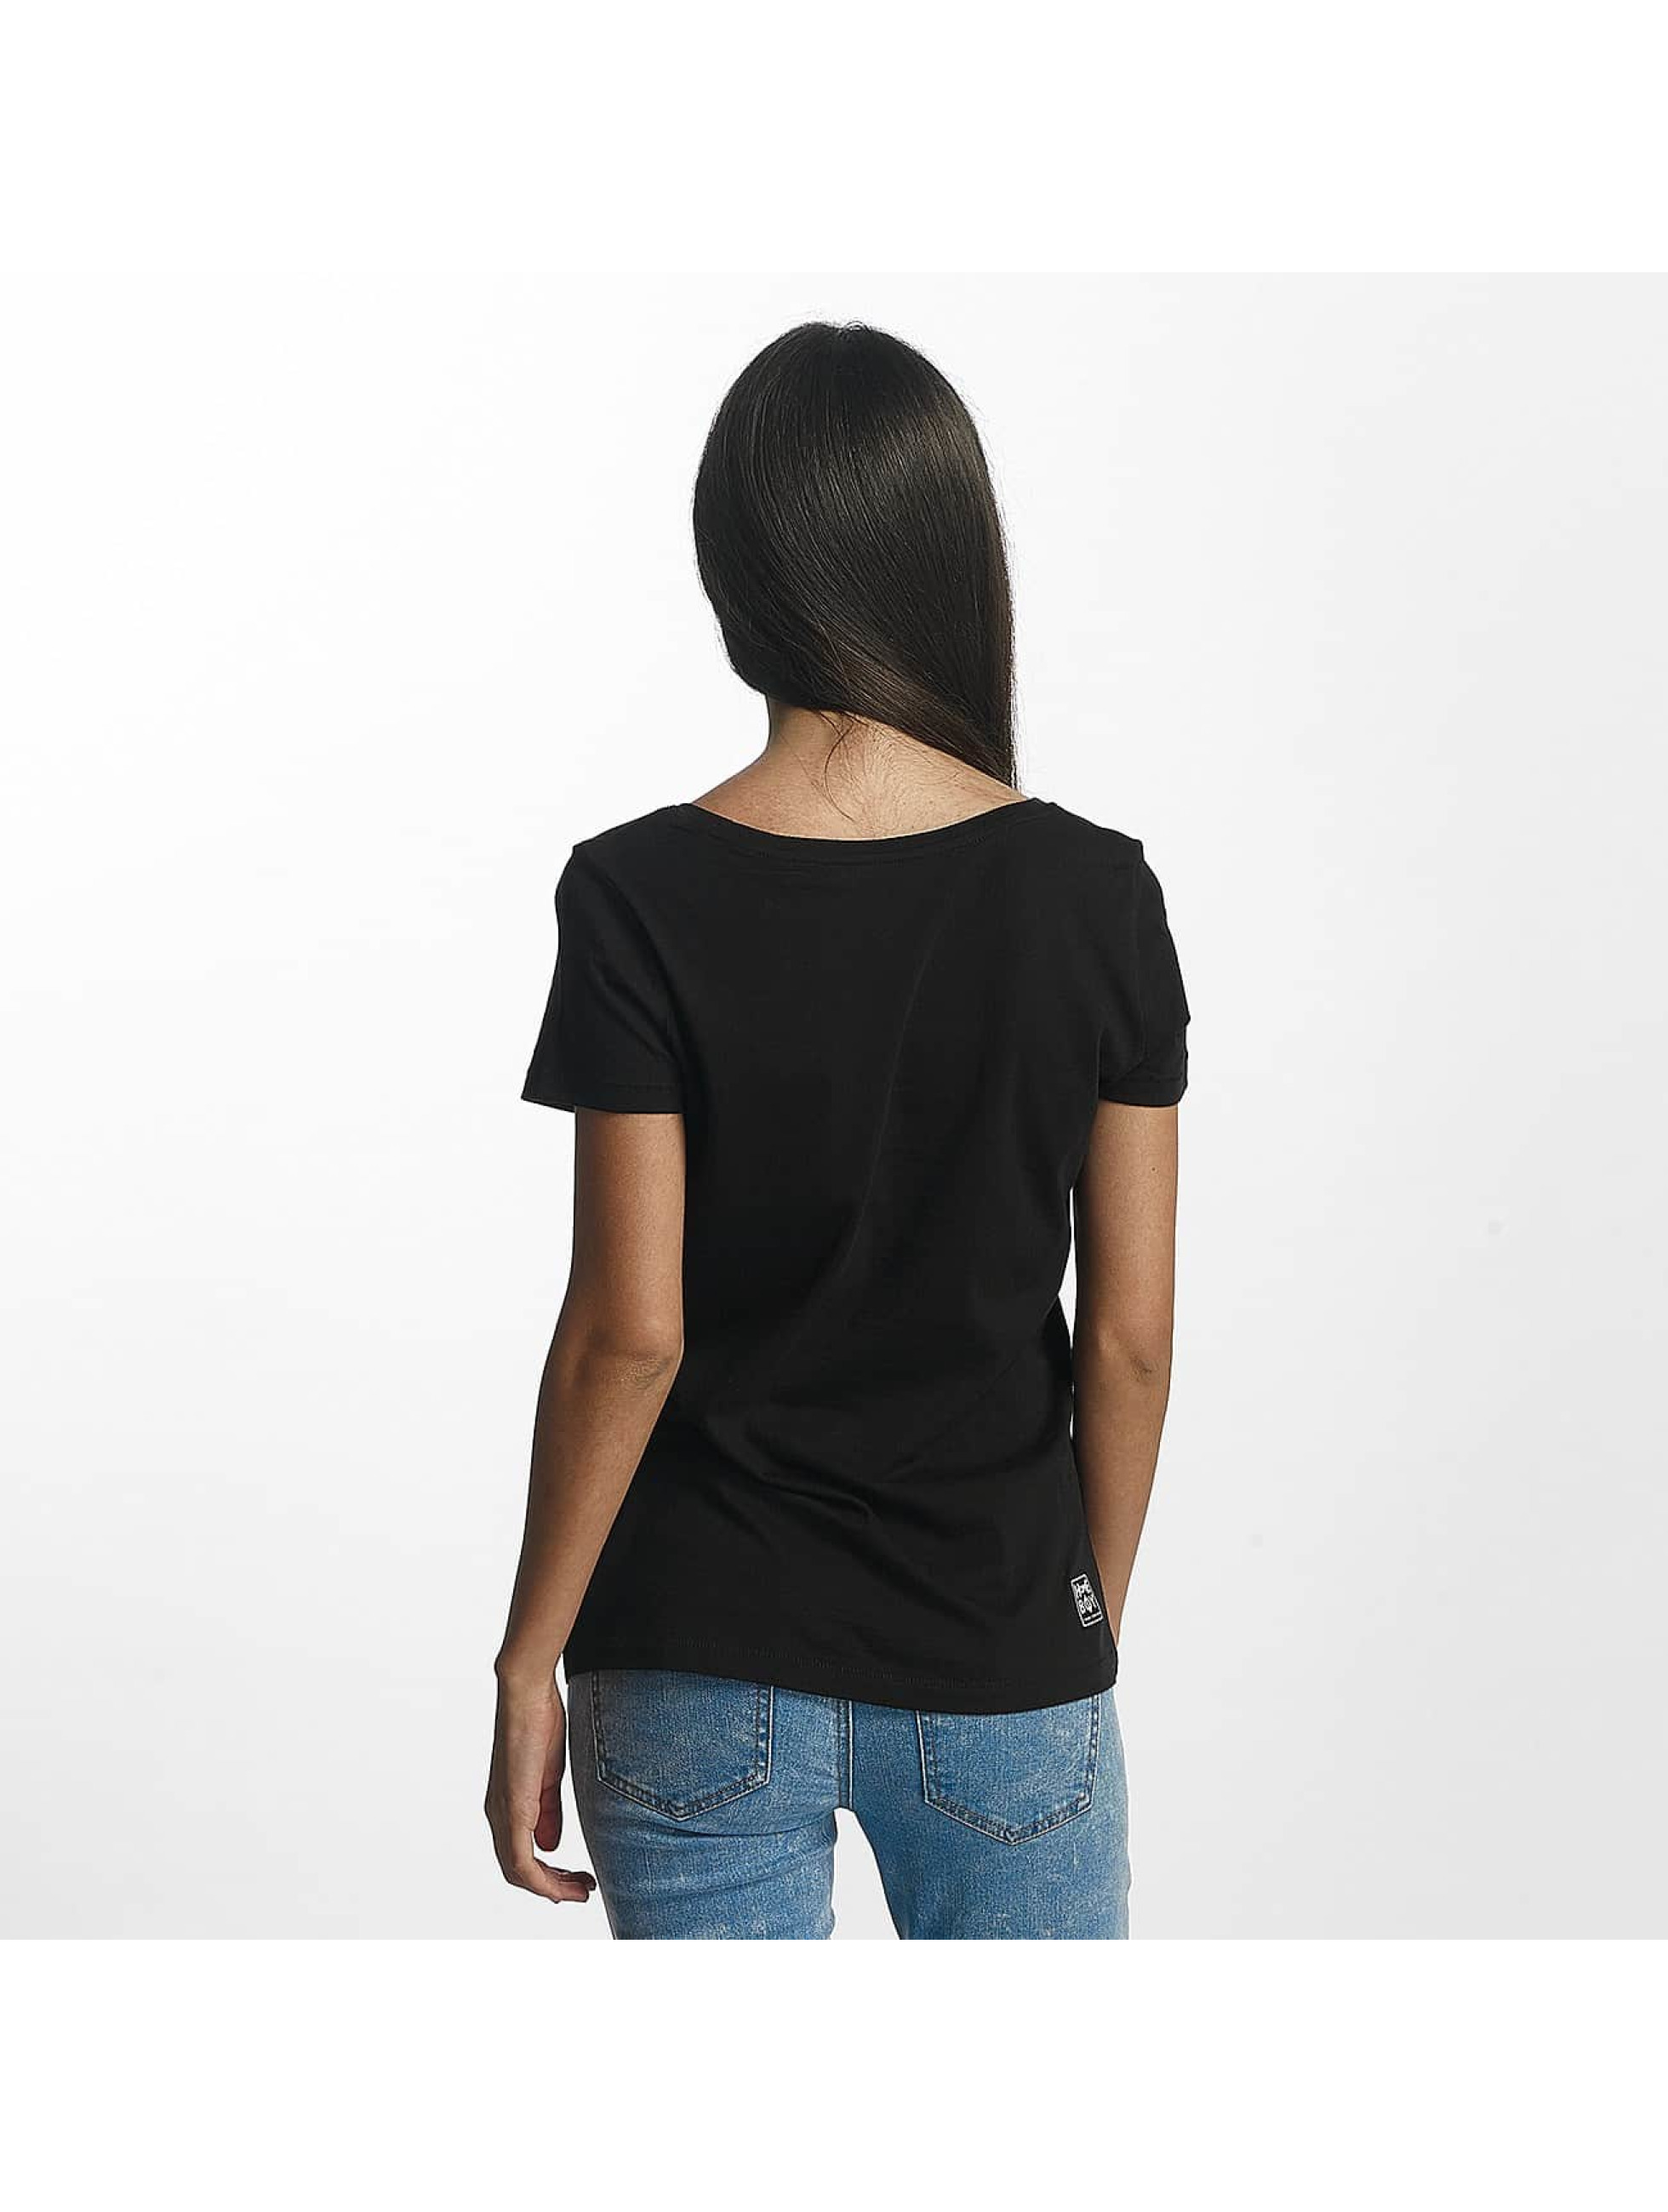 Homeboy Camiseta Paris negro